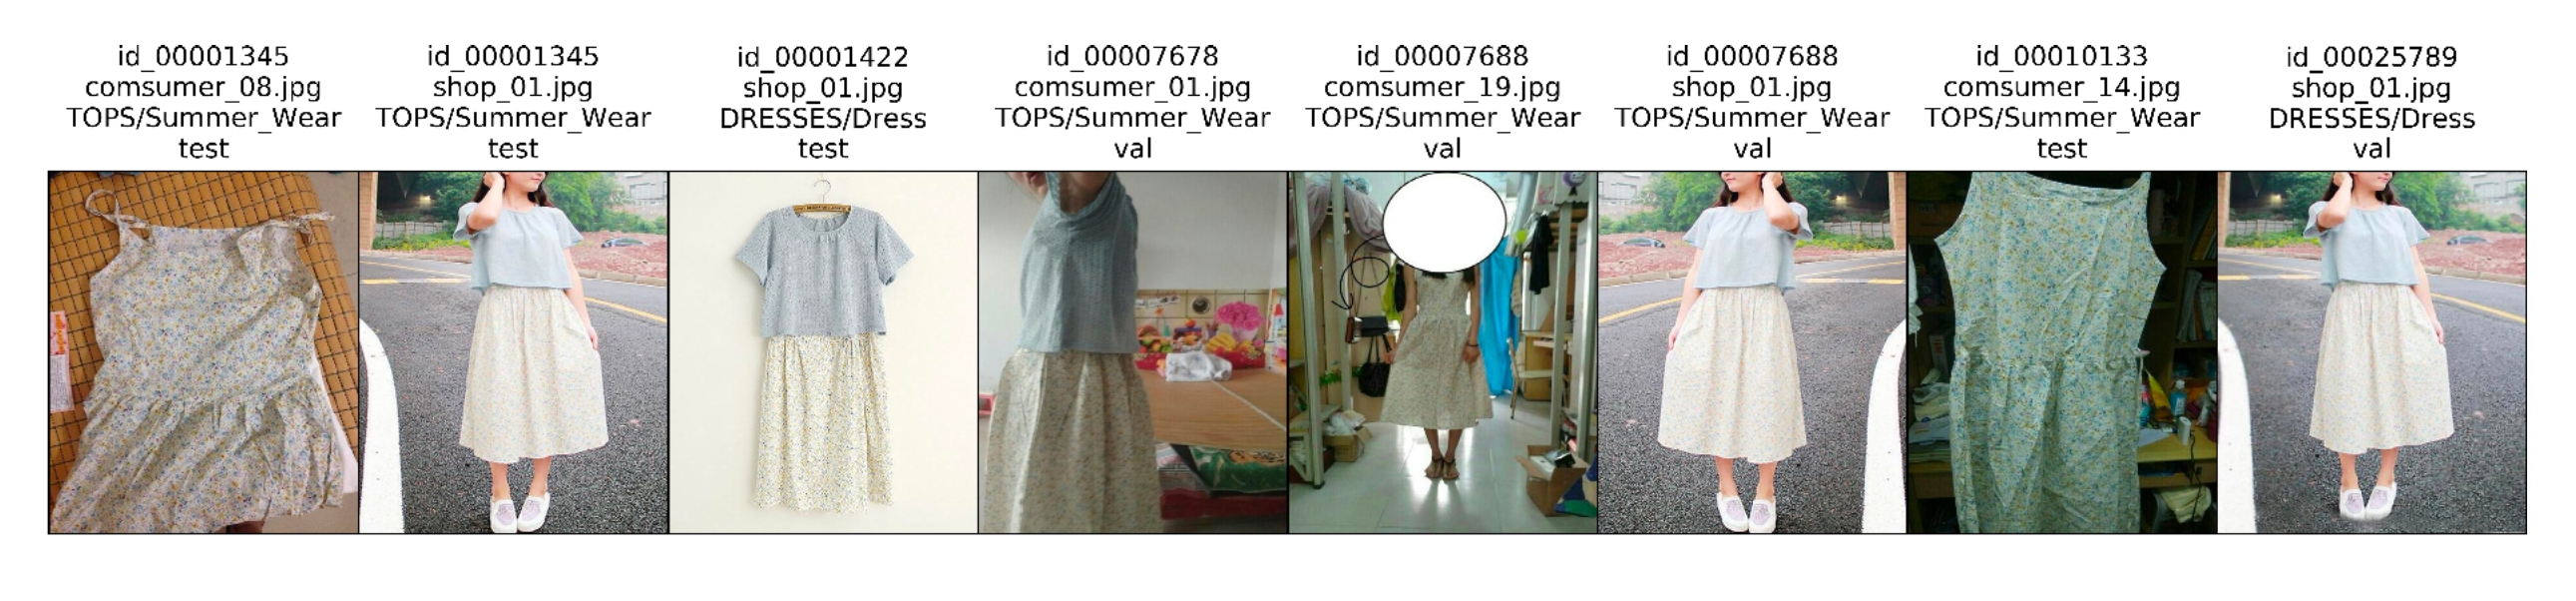 Photos that depict the same clothing item. Above each photo there are pieces of information. The same item have various ids